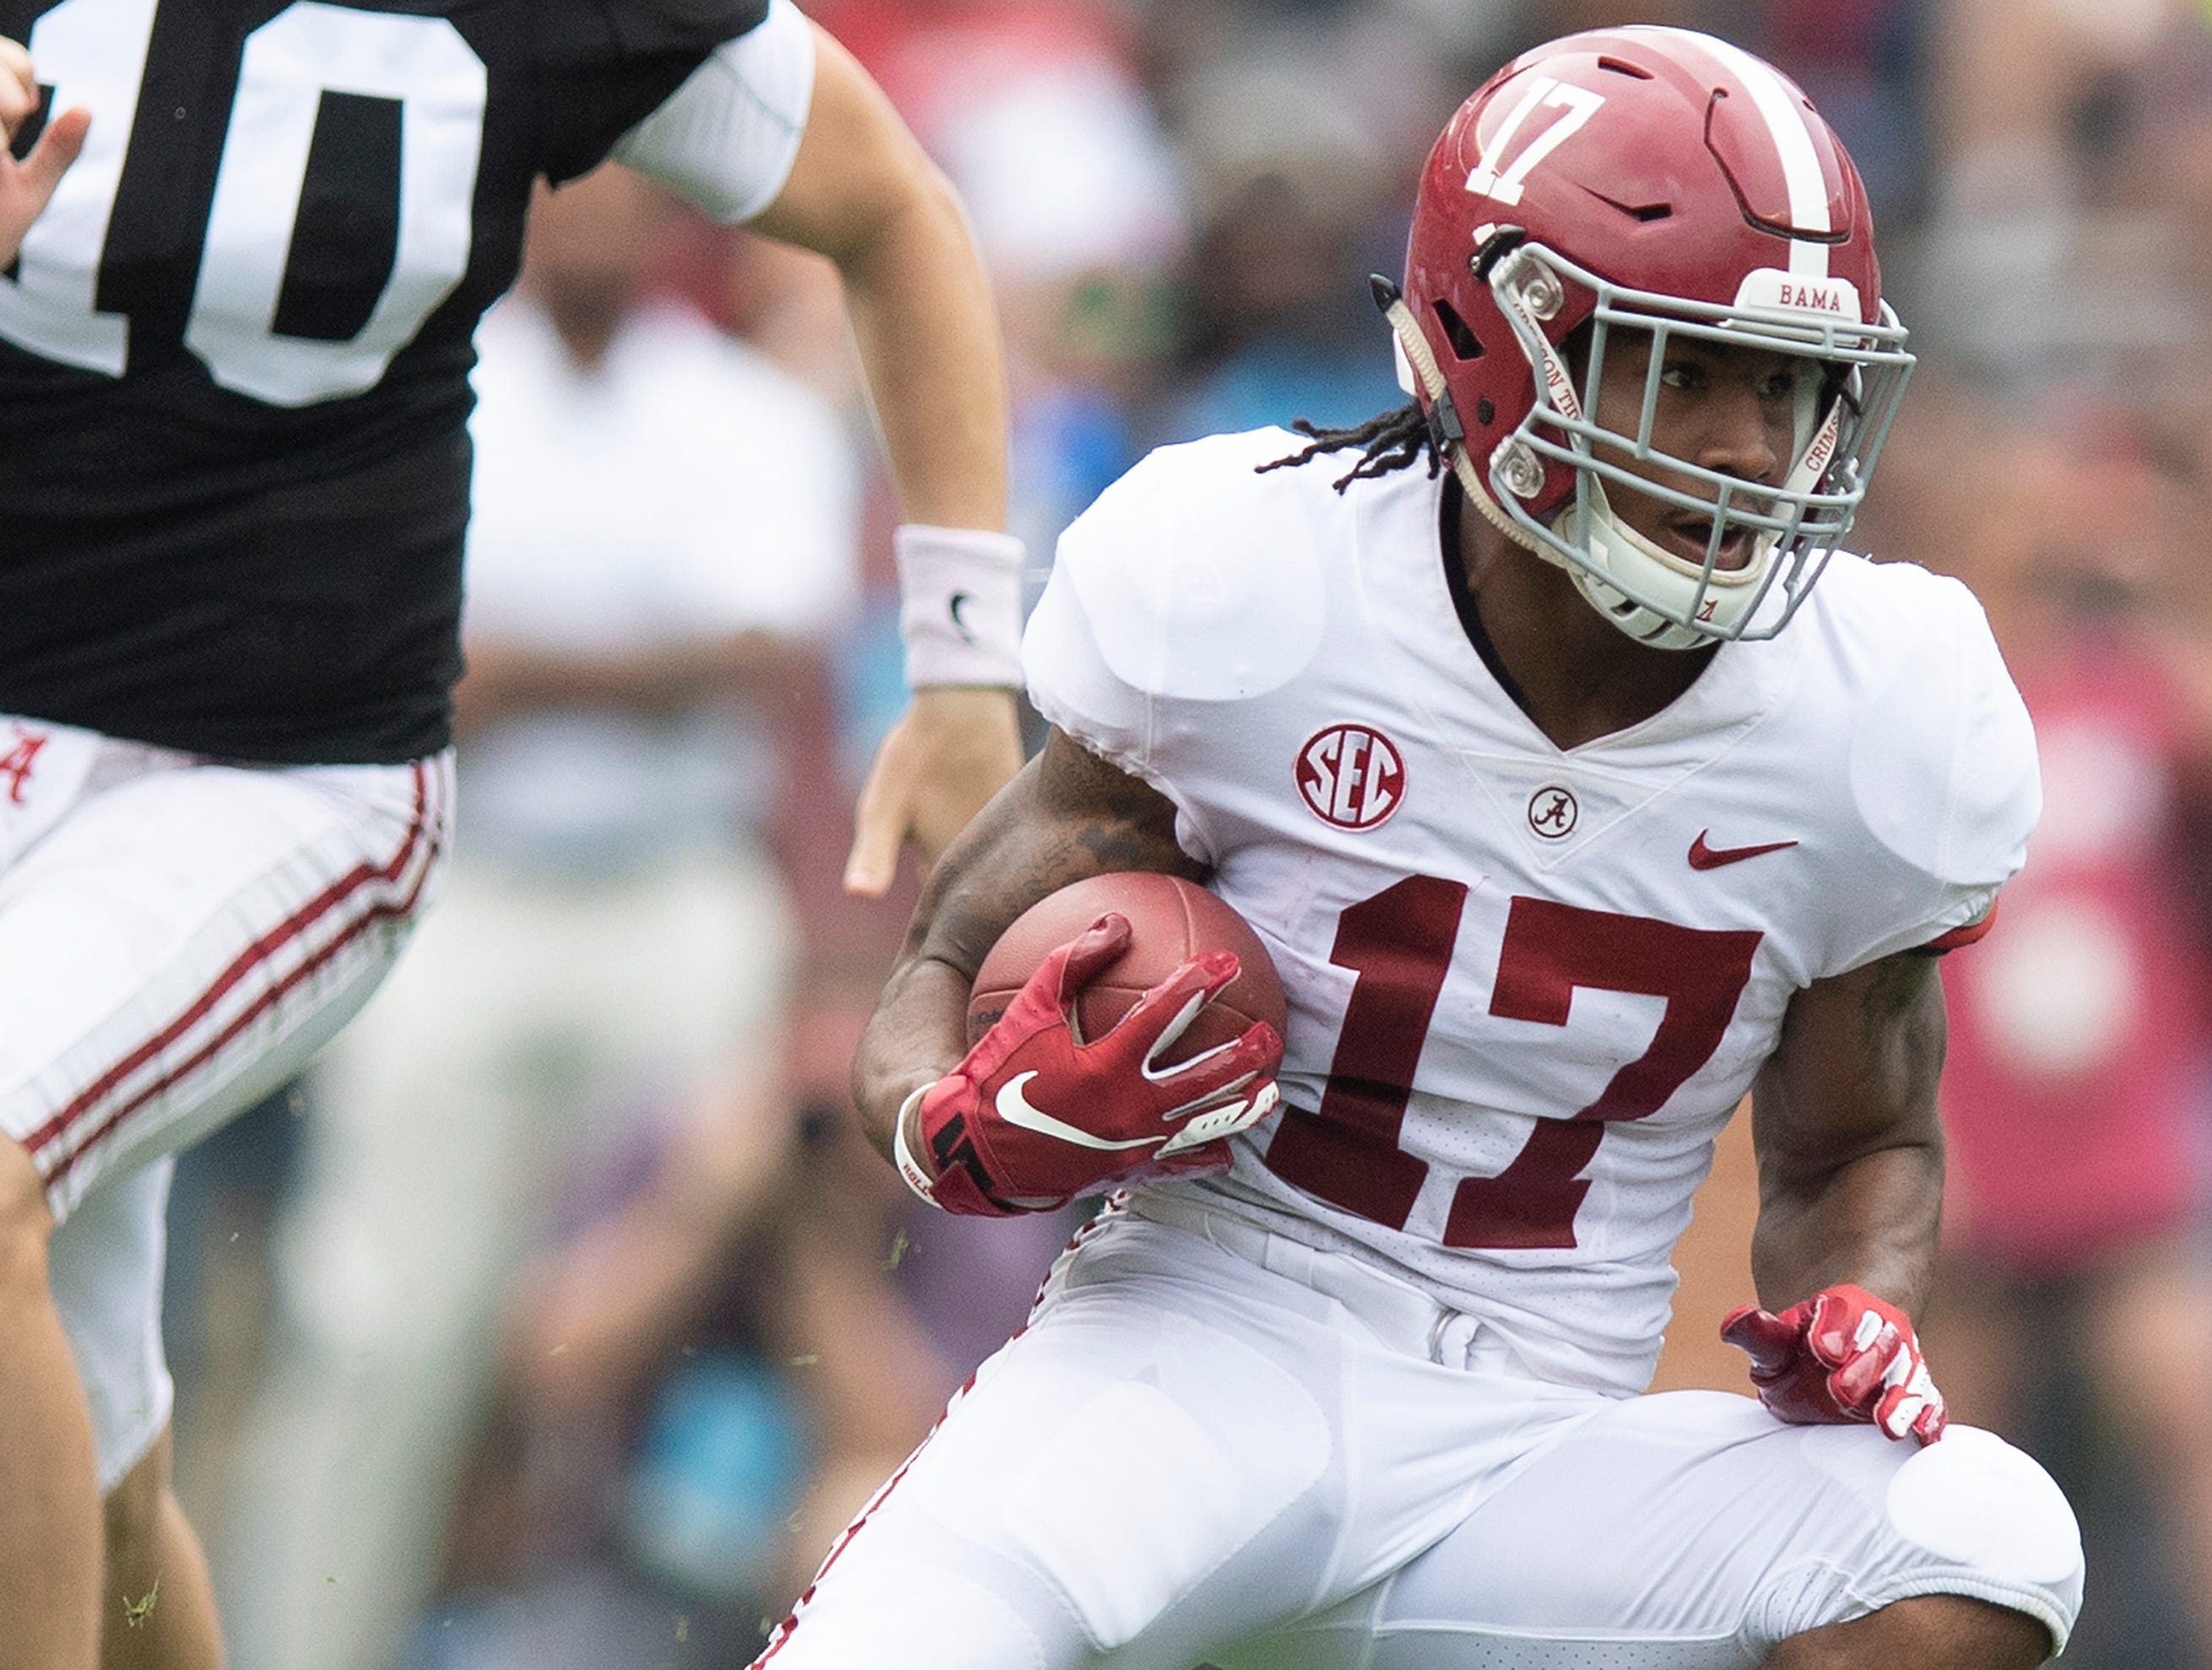 Alabama wide receiver Jaylen Waddle (17) carries the ball during second half action in the Alabama A-Day spring football scrimmage game at Bryant Denny Stadium in Tuscaloosa, Ala., on Saturday April 13, 2019.